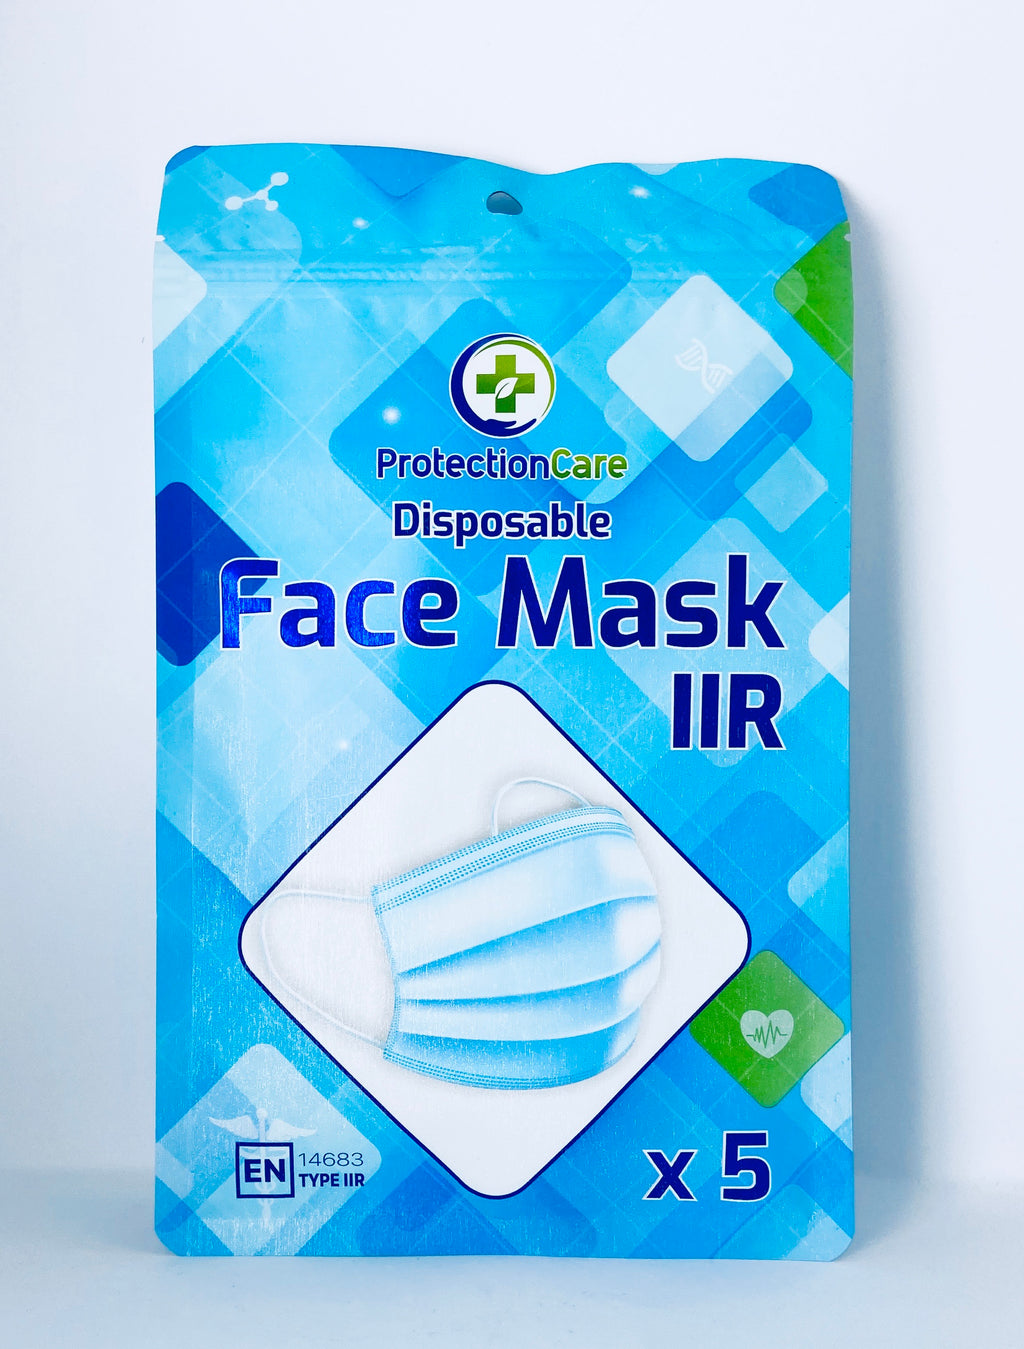 Face Mask IIR 5 stk. - ProtectionCare